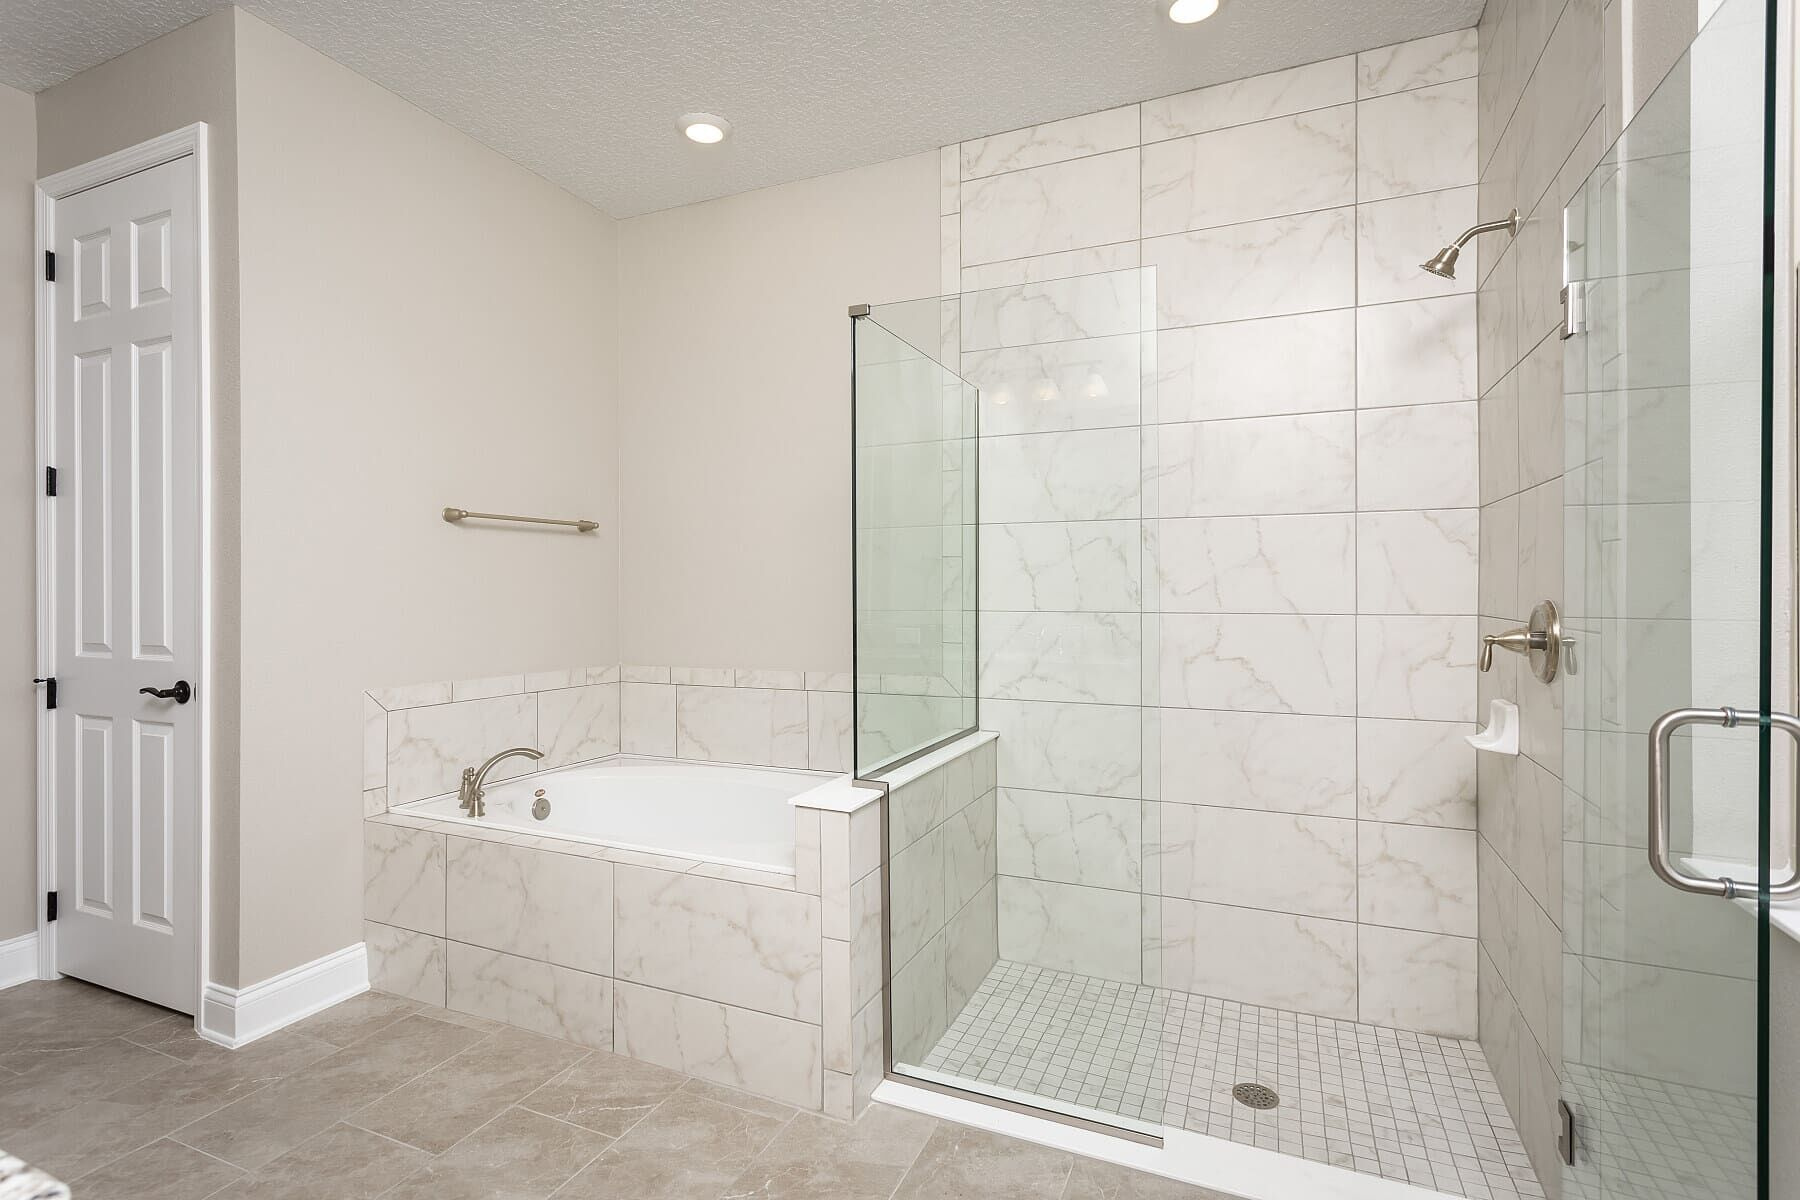 Bathroom featured in the Corina II By M/I Homes in Orlando, FL